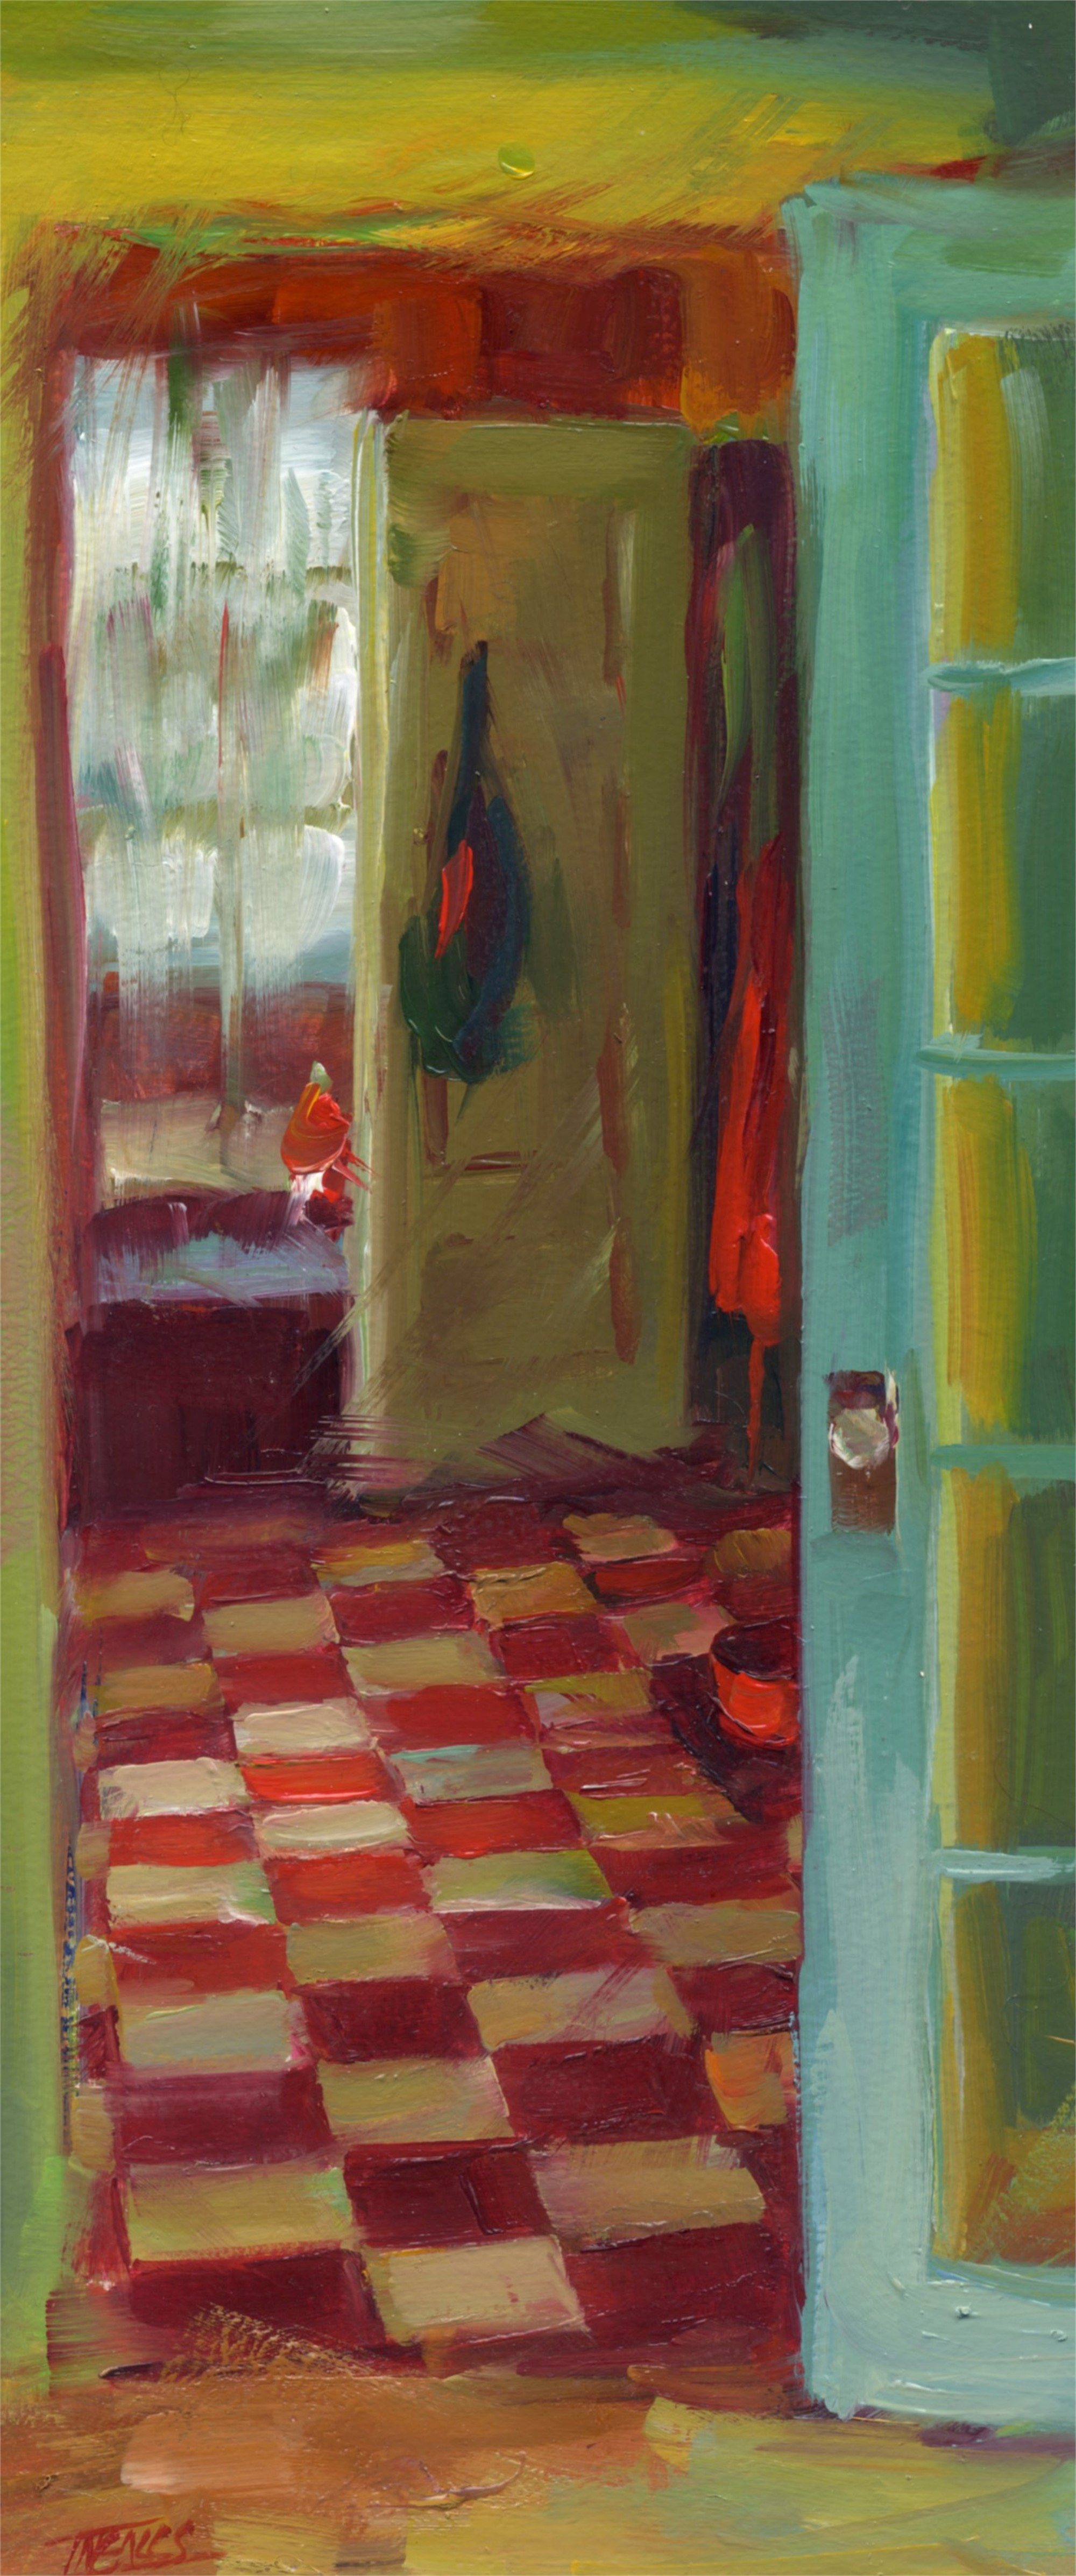 Portals by Pam Ingalls